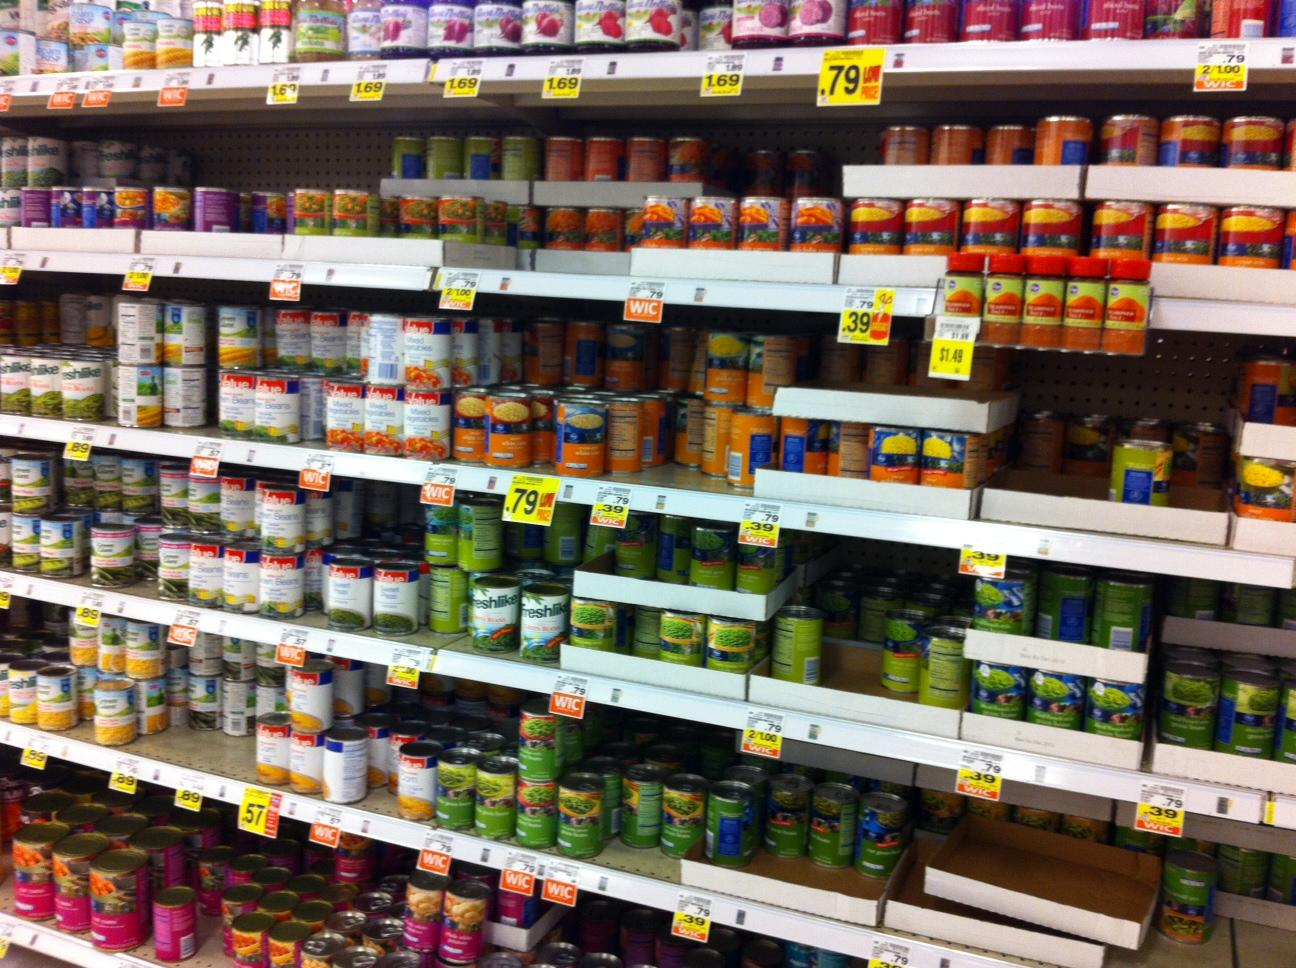 Canned vegetables on a shelf.